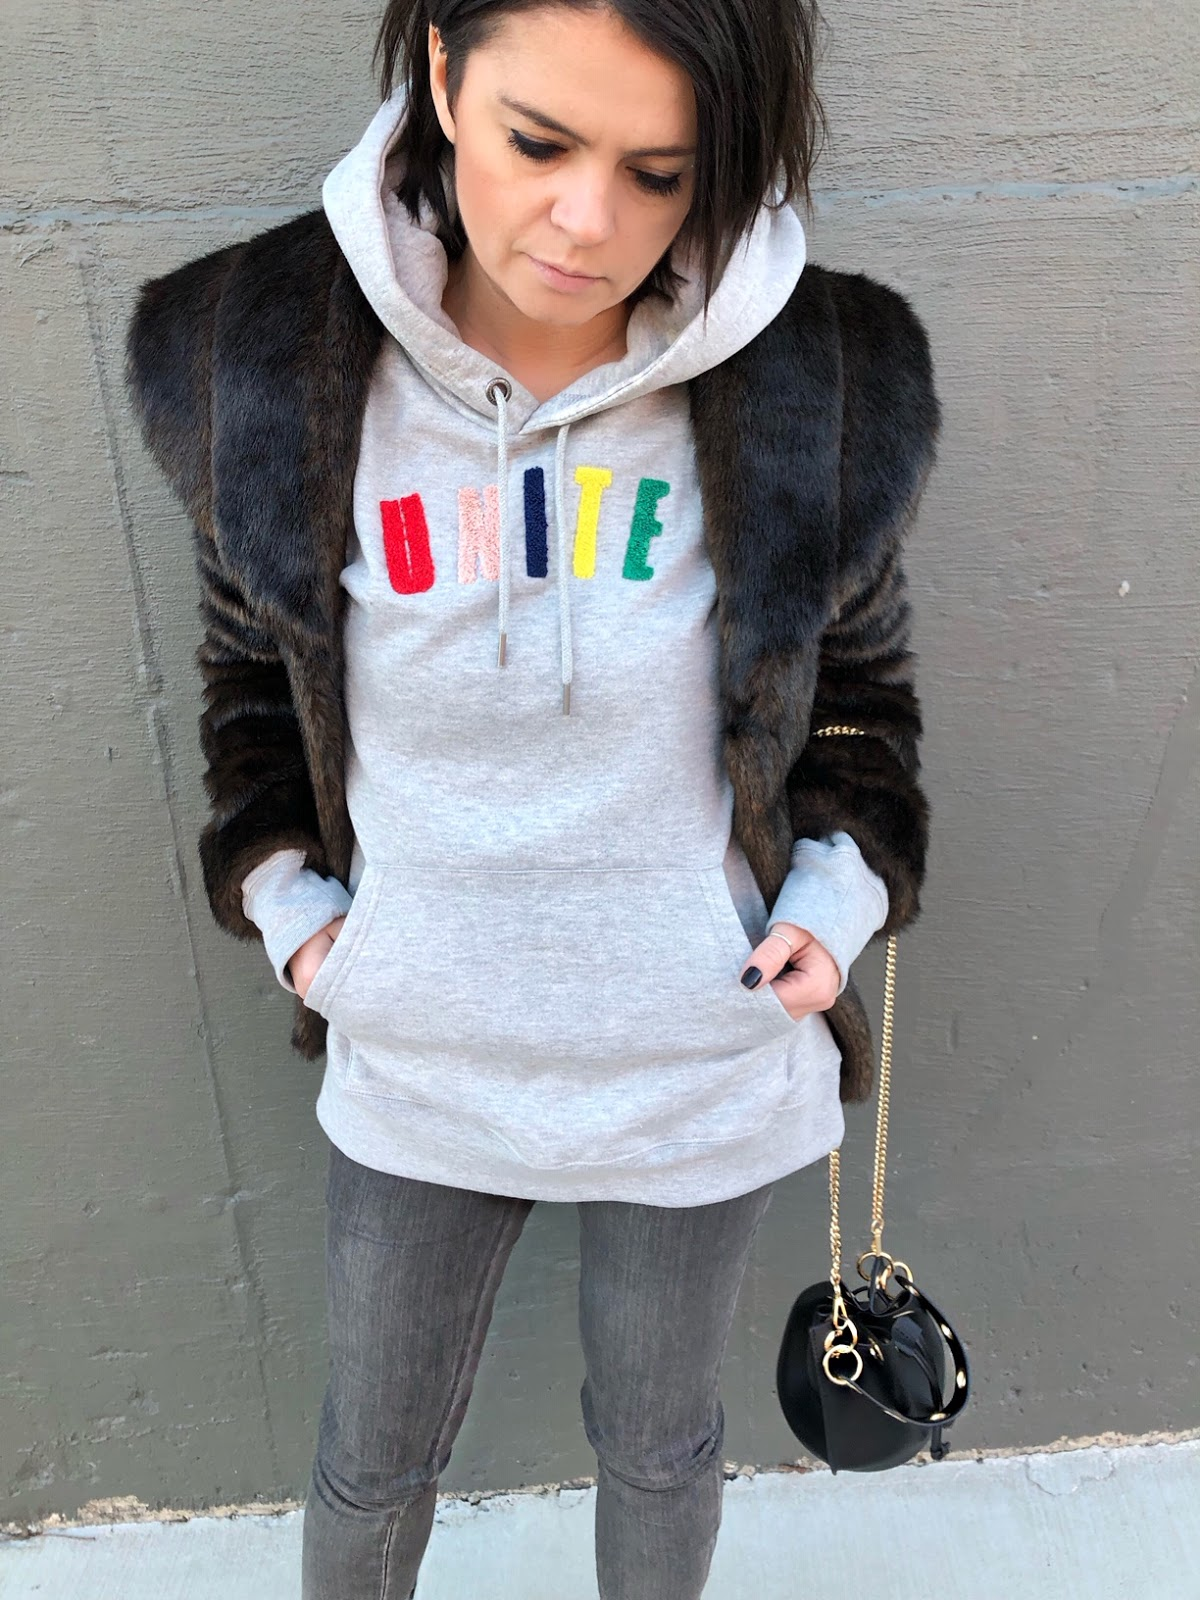 A gray sweatshirt with colorful UNITE graphic